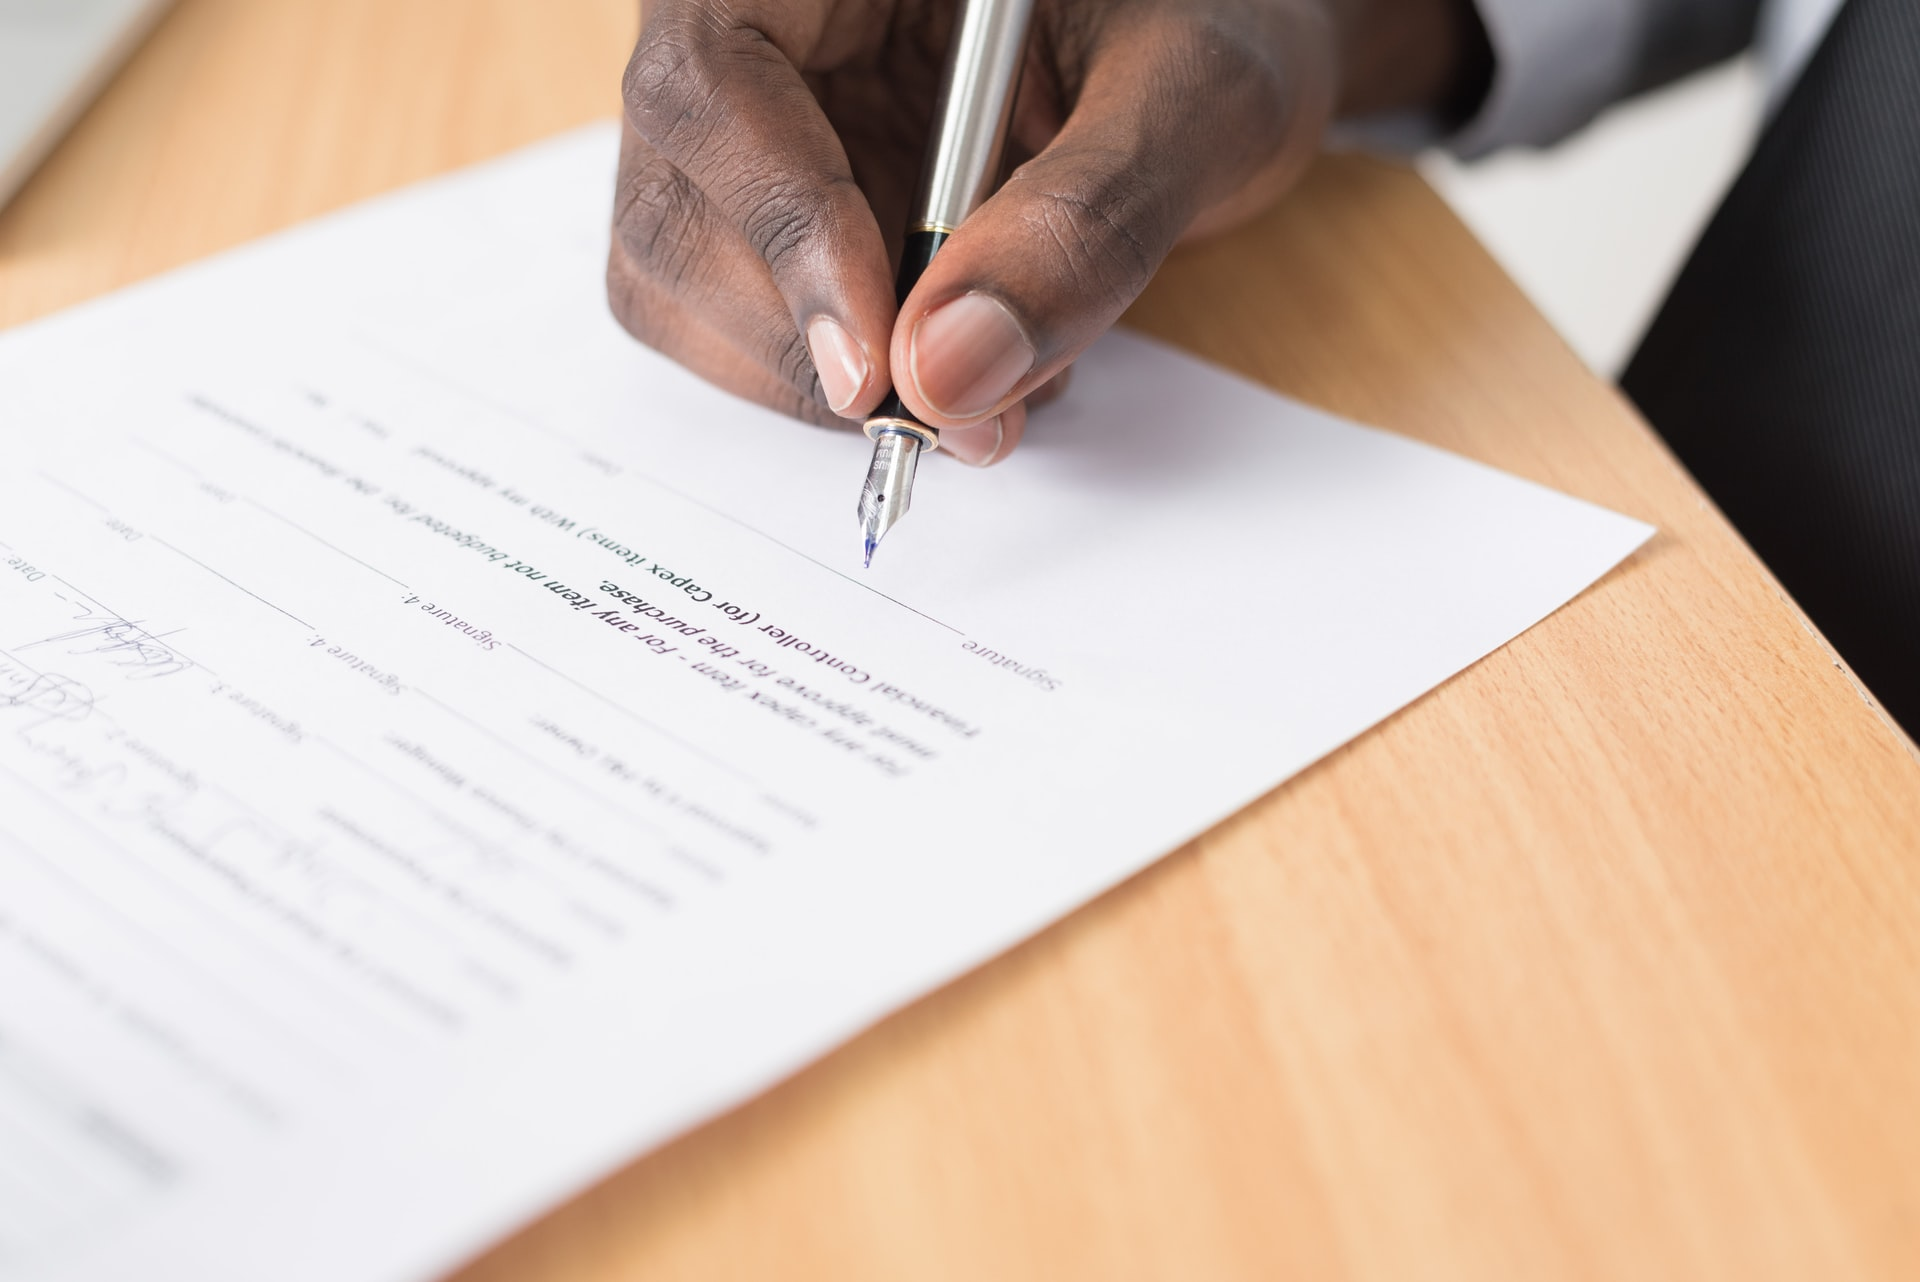 Things to Consider Before Applying for a Physician Mortgage Loan